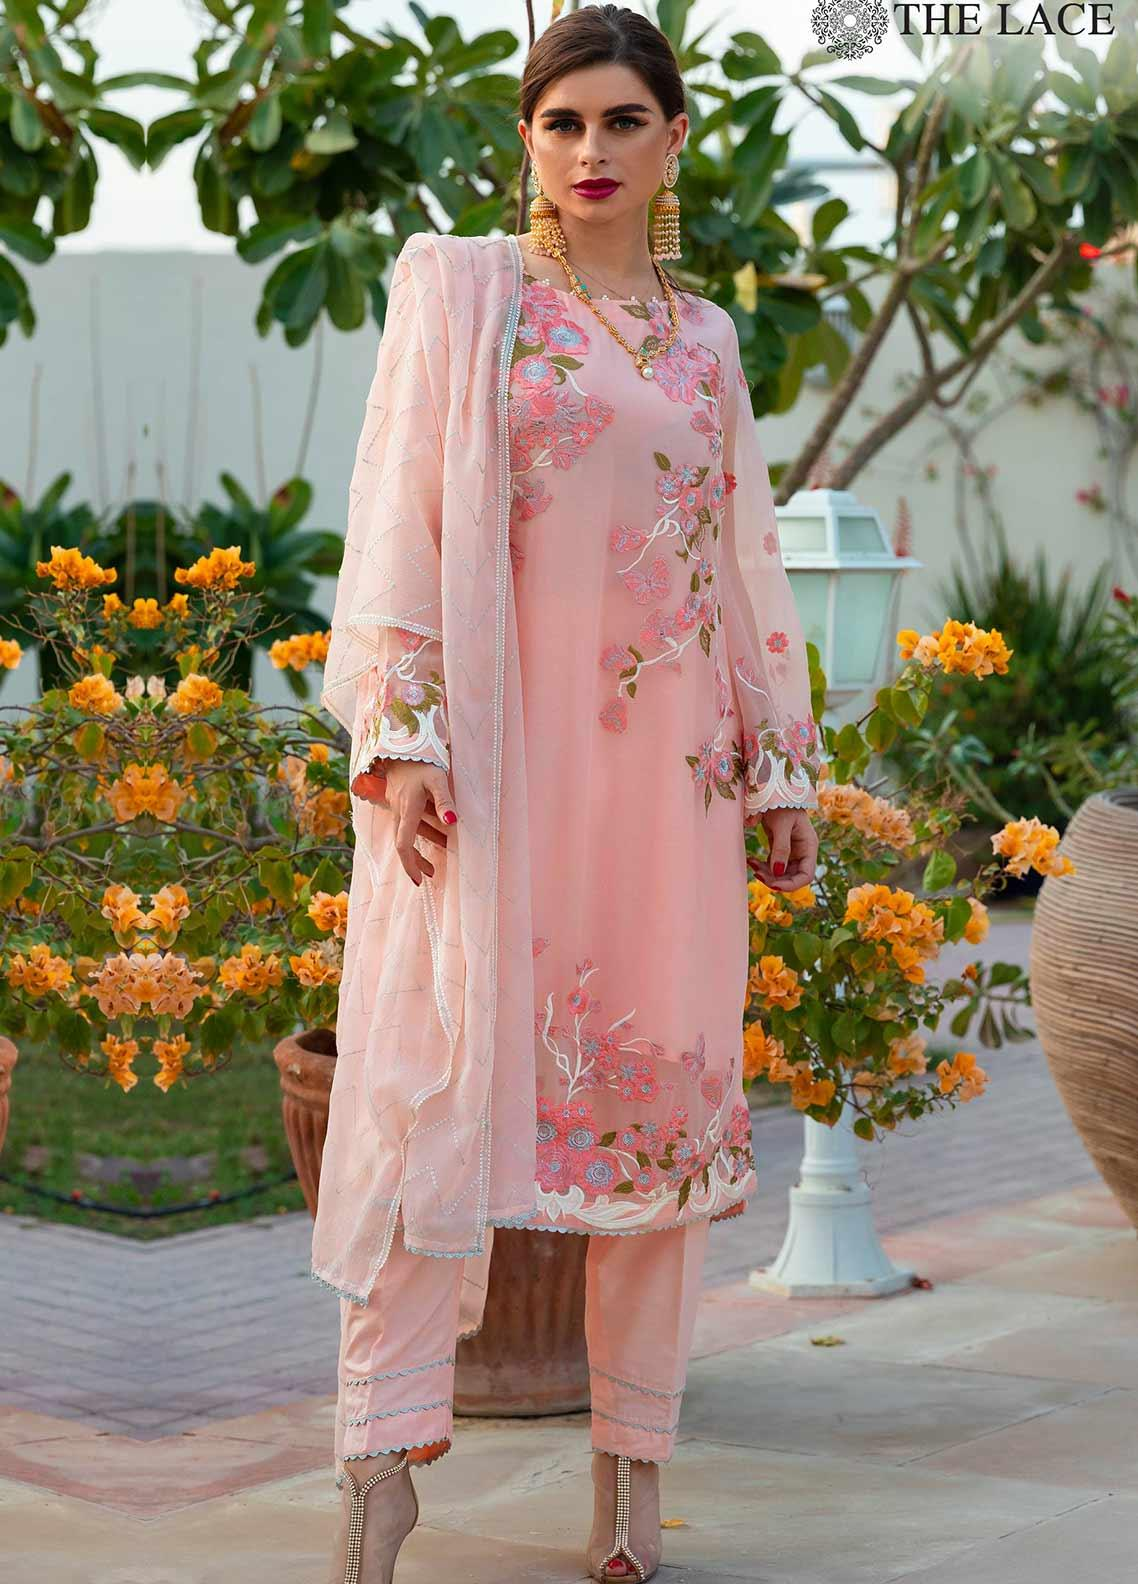 The Lace Embroidered Chiffon Stitched 3 Piece Suit 09 Belle Rose